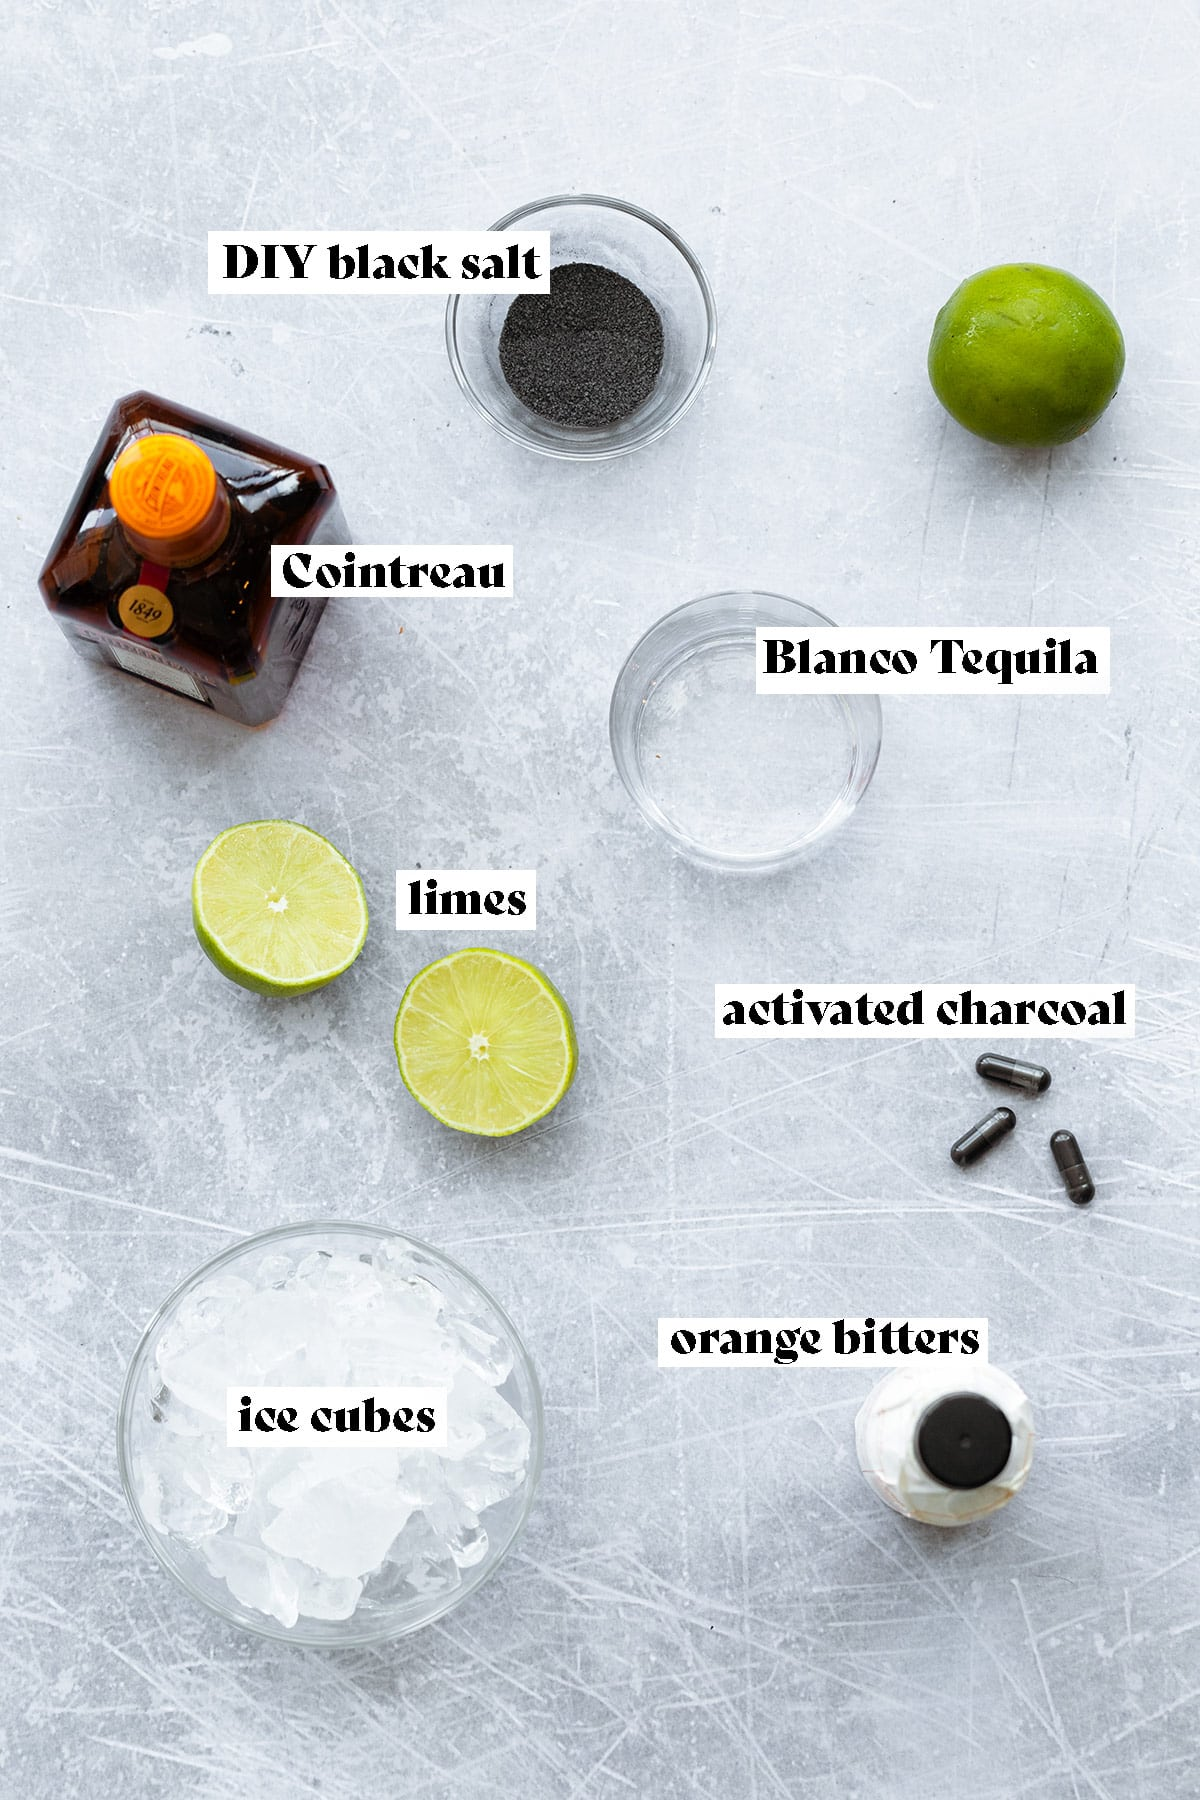 Ingredients for black margarita laid out on a light metal background.